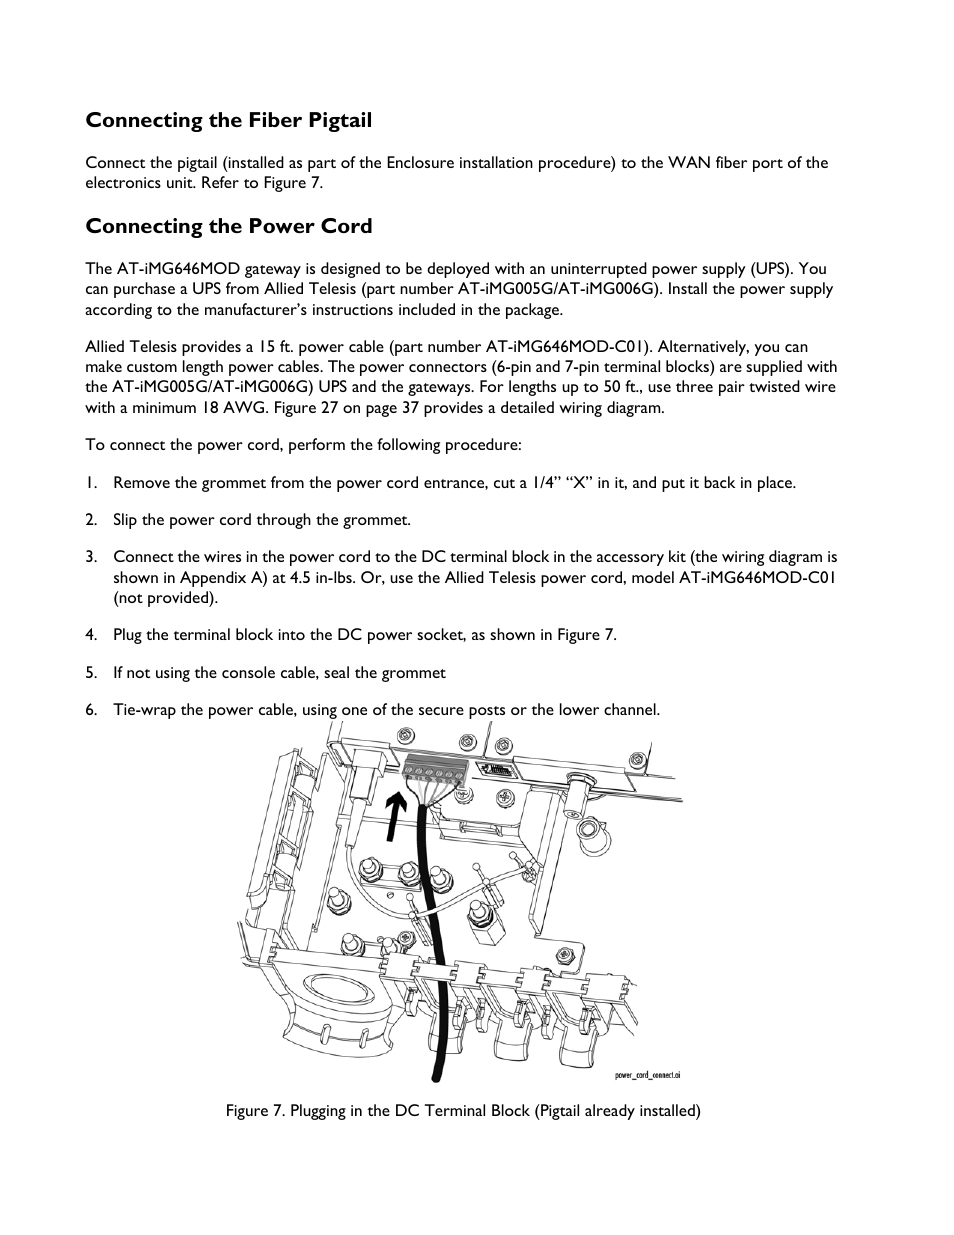 connecting the fiber pigtail, connecting the power cord | allied telesis  at-img6x6mod electronics unit user manual | page 14 / 46